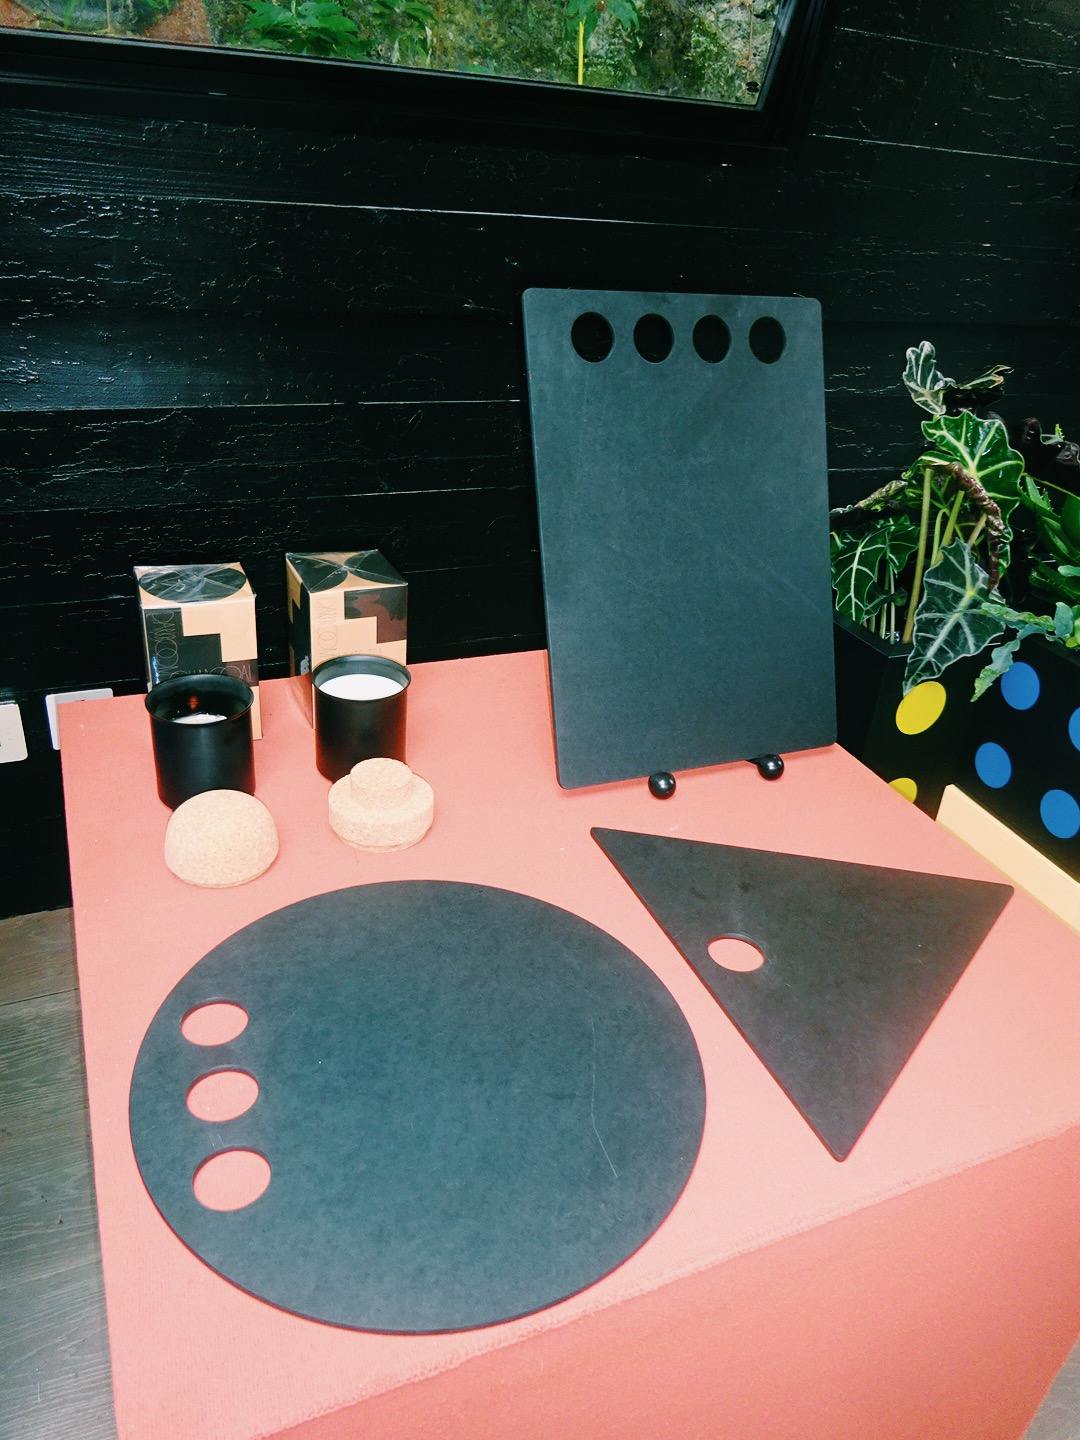 Cutting boards and candles by Darkroom - I want them all!